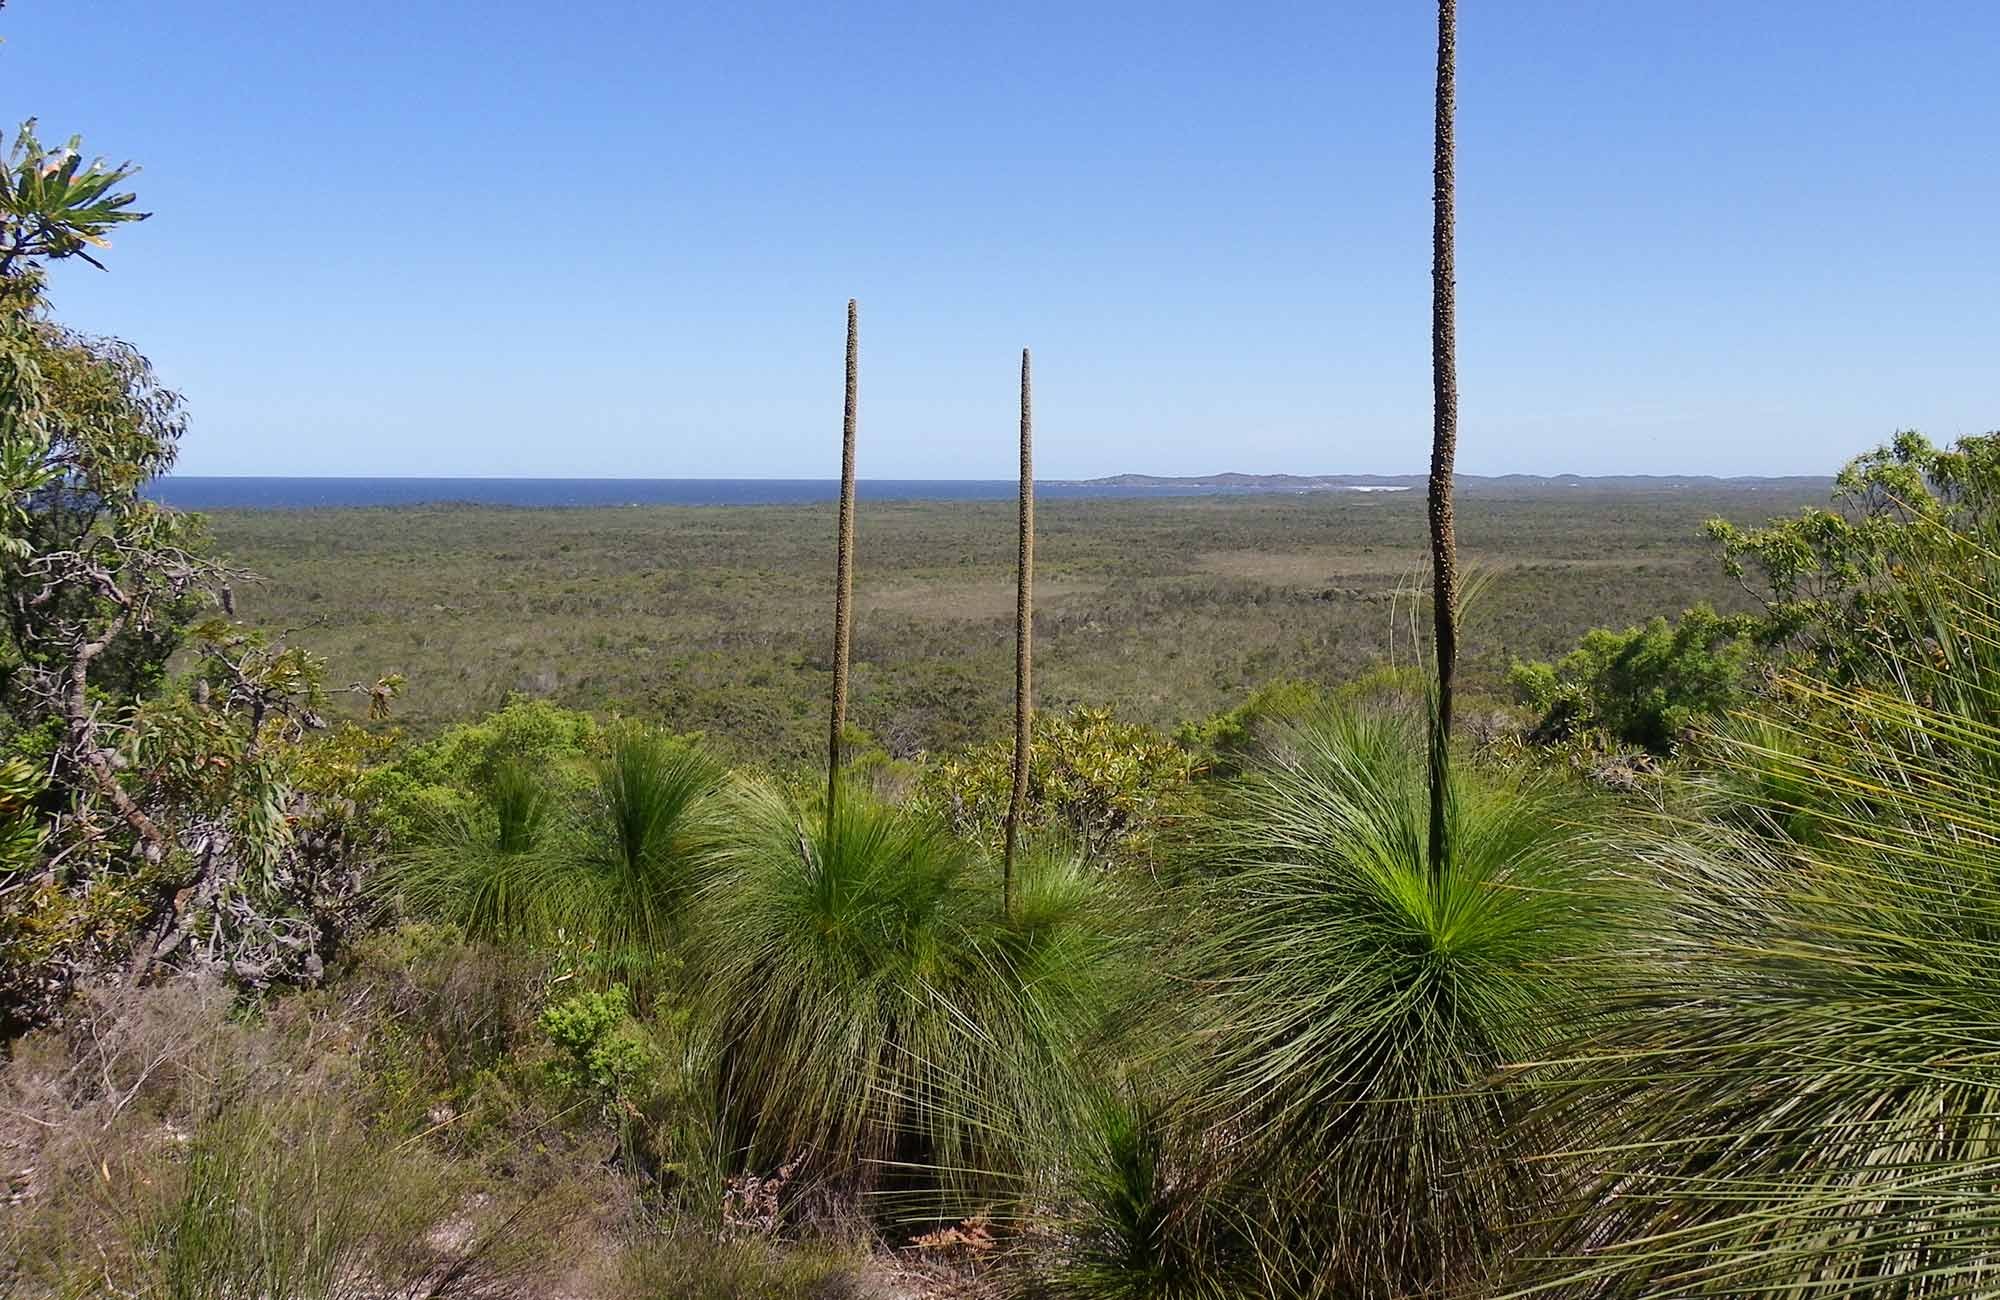 Broadwater inland lookout, Broadwater National Park. Photo: